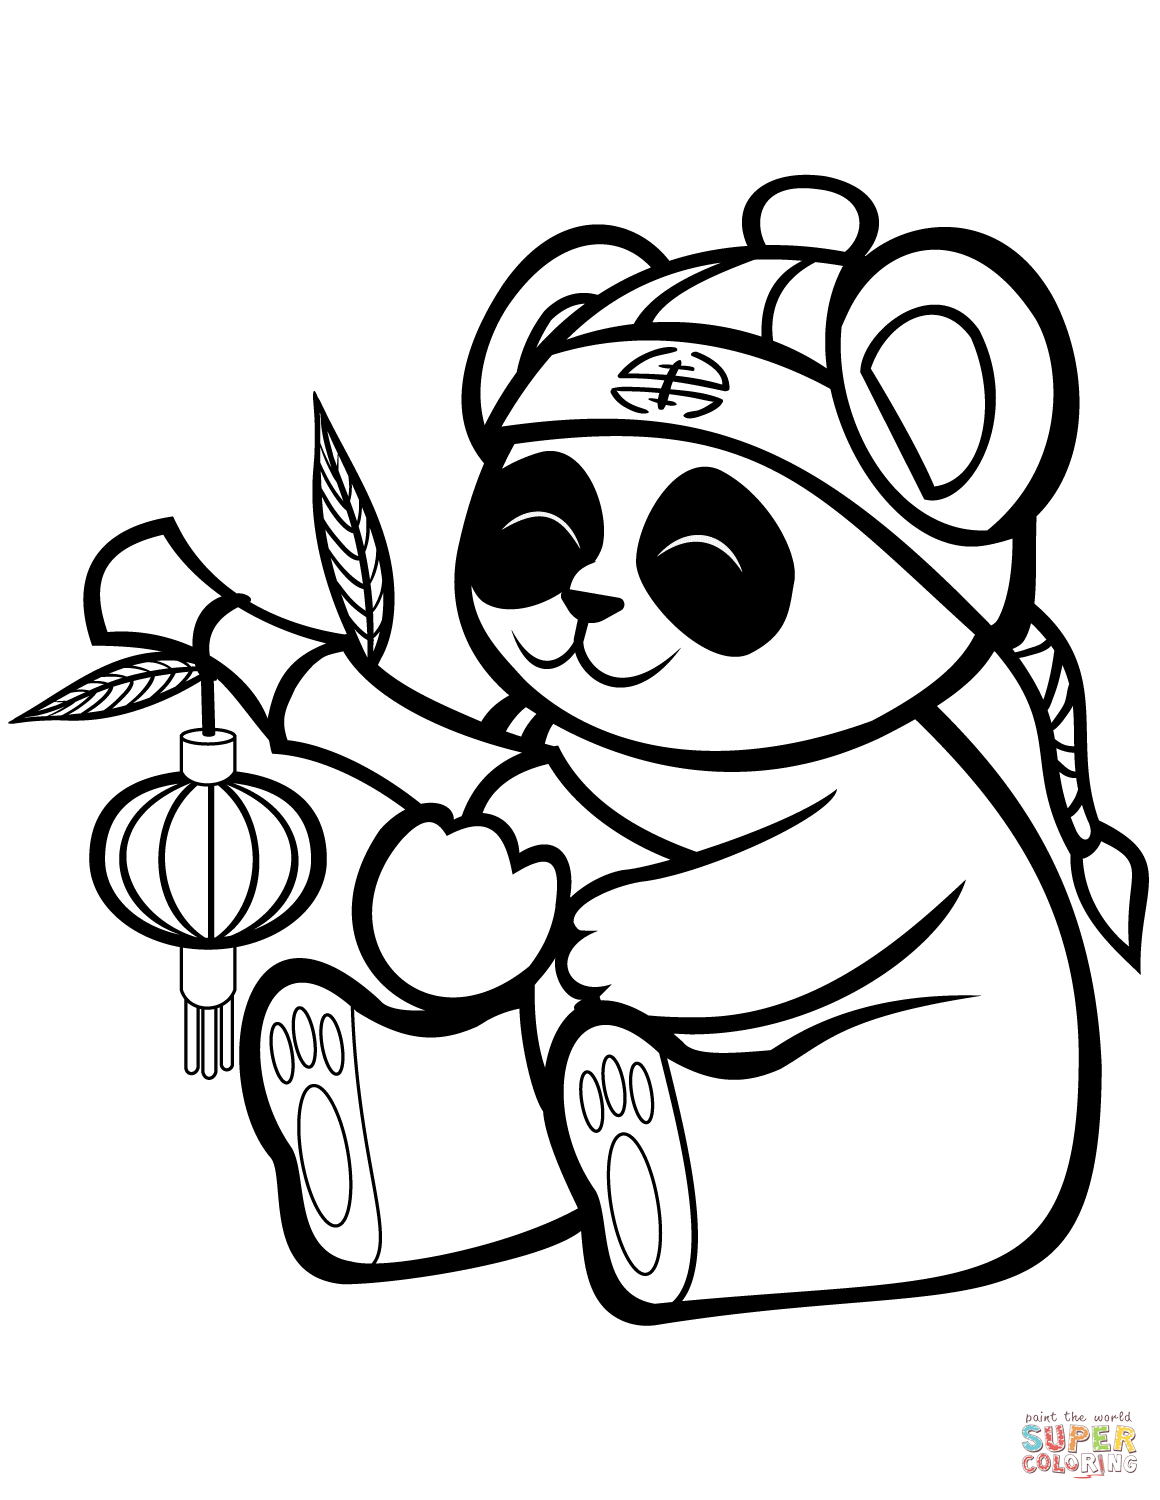 Cute Panda With A Bamboo Lantern Coloring Page